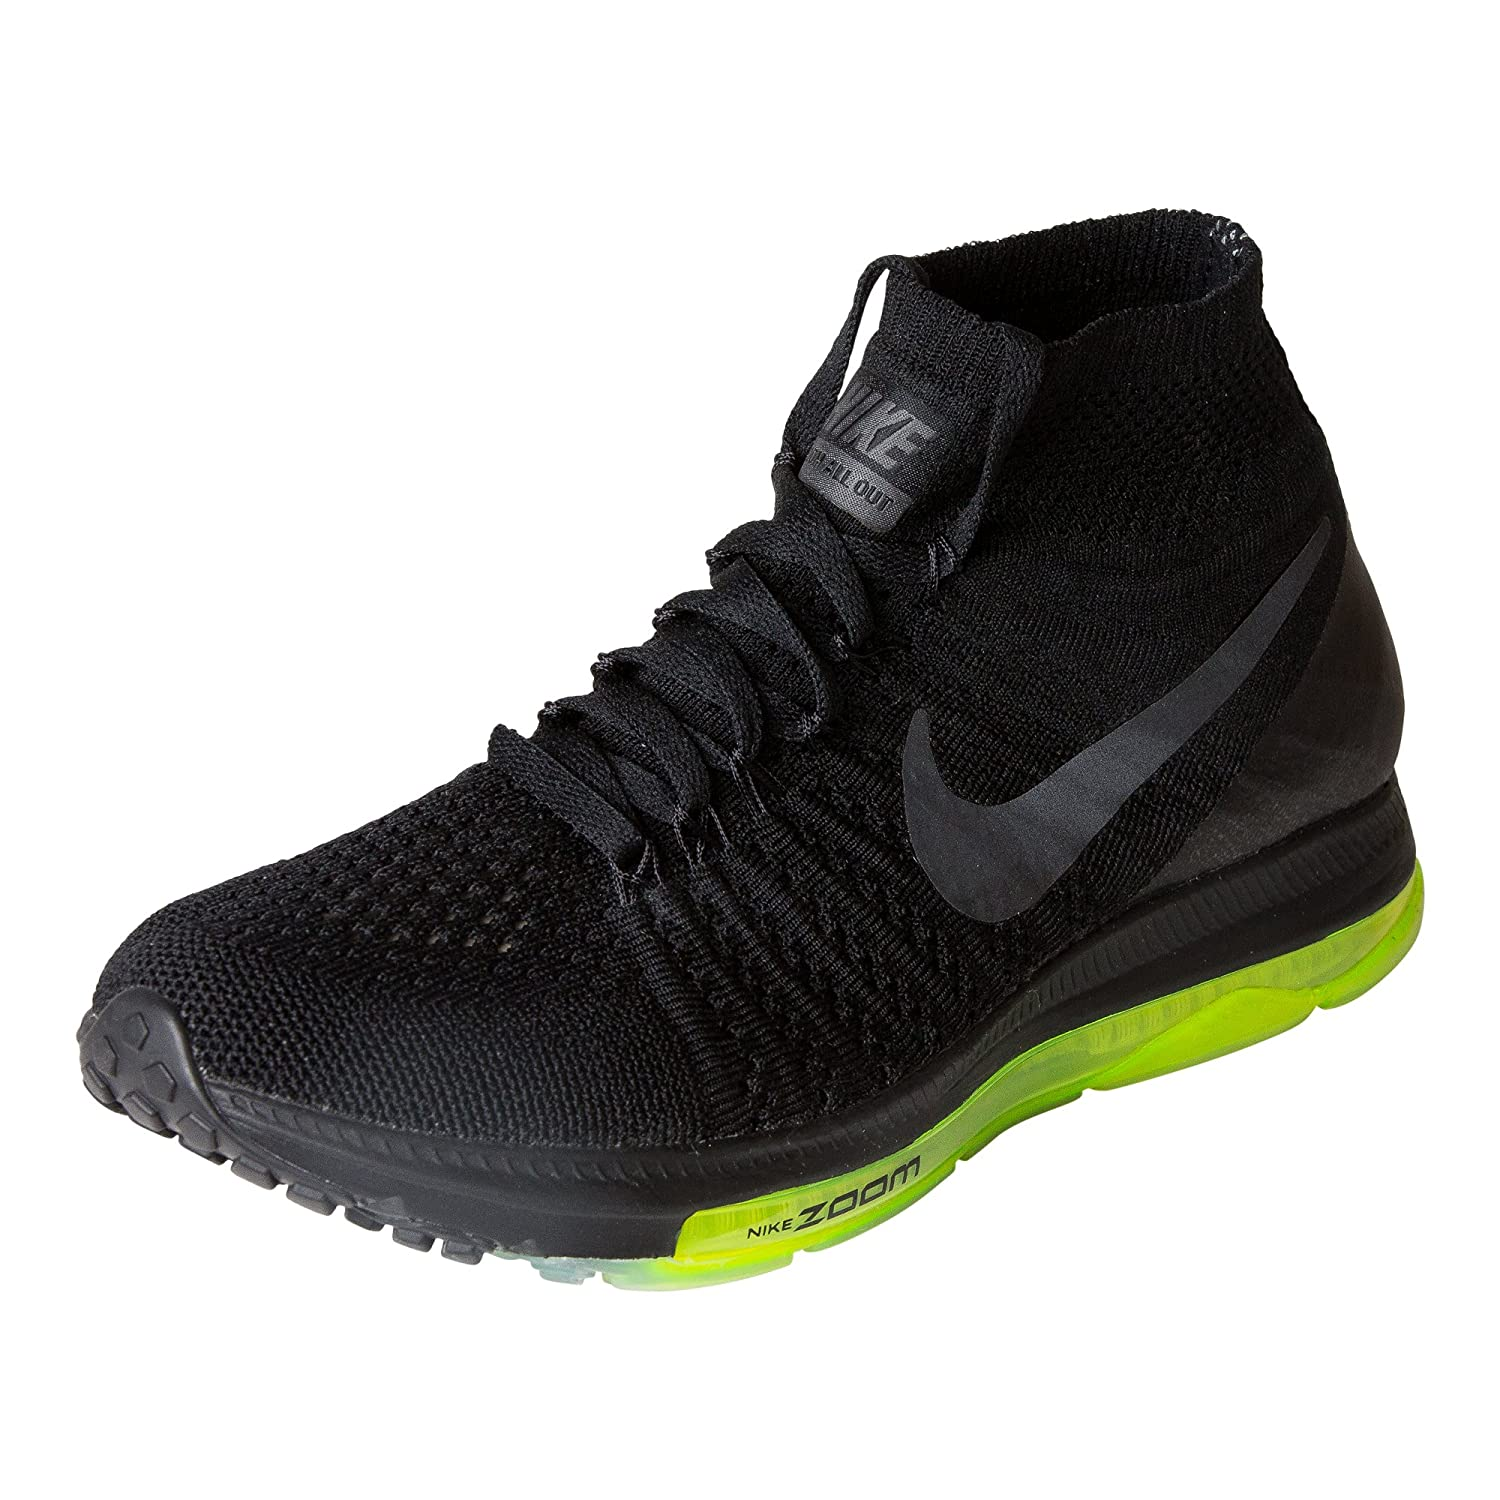 Nike Women's Zoom All Out Flyknit Running Shoes B00595J9N0 6 D(M) US|Black Black Volt 001